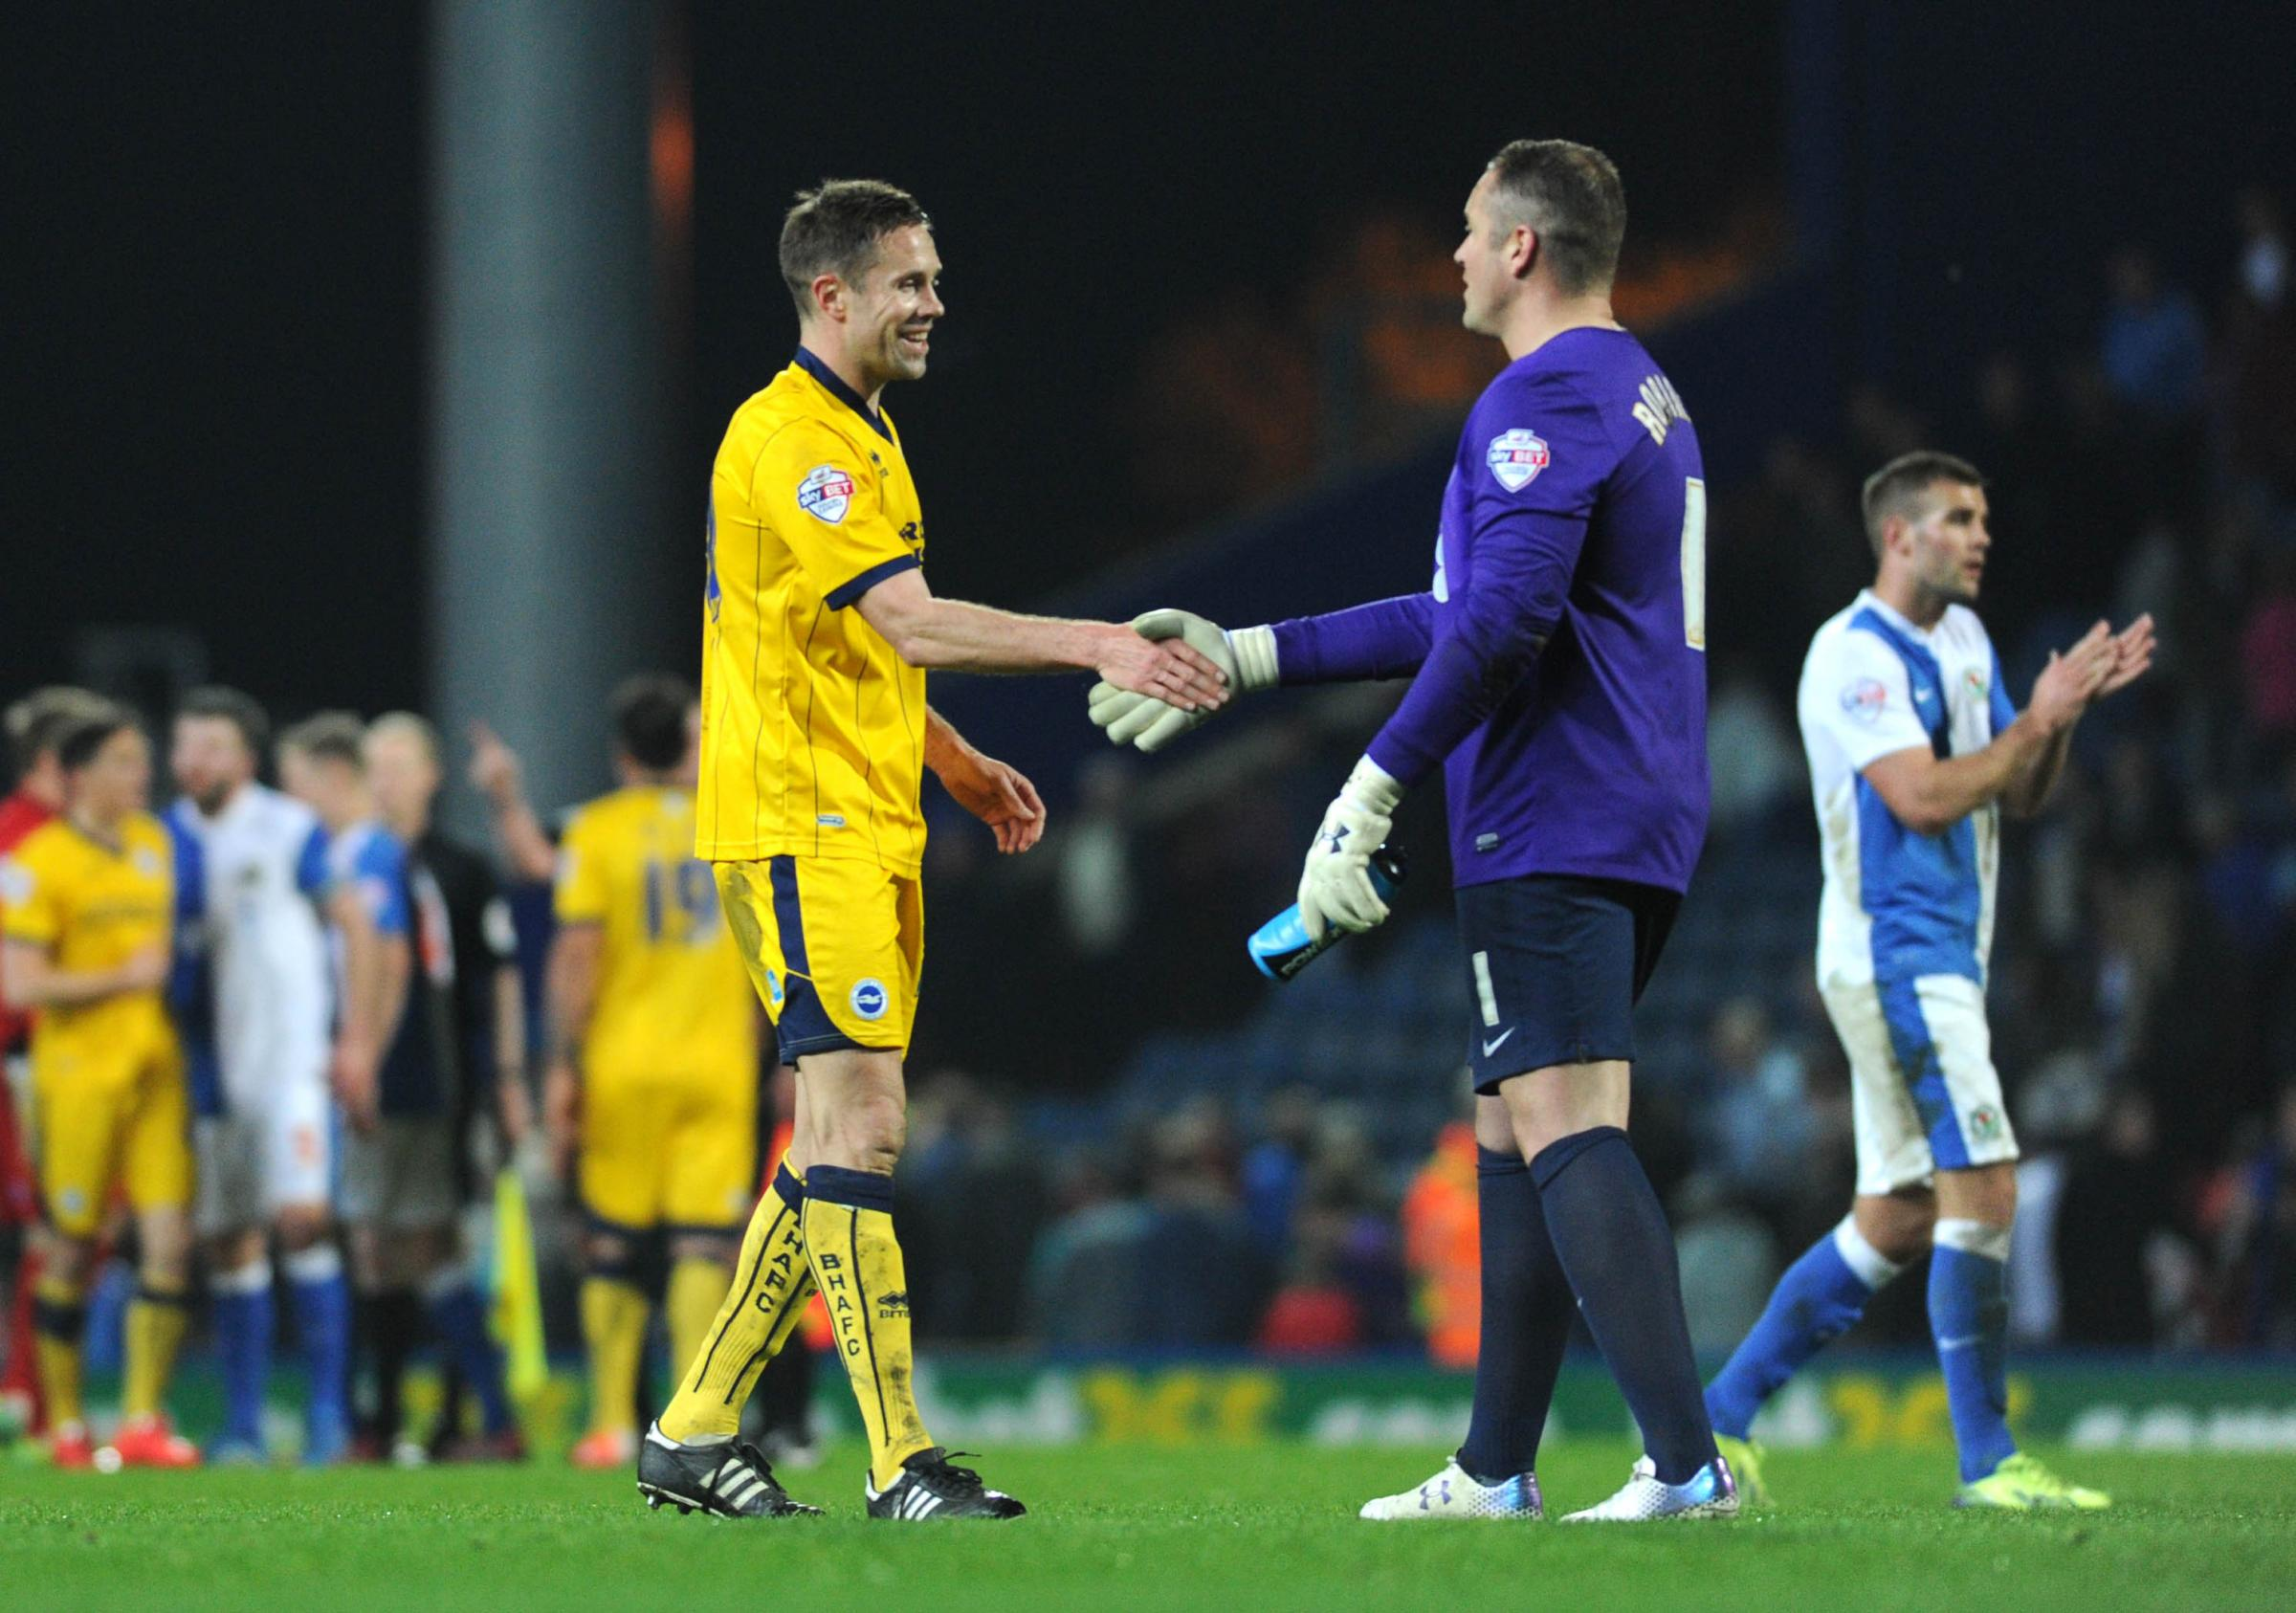 Matt Upson shakes hands with Paul Robinson after Albion snatched a confidence boosting point at Blackburn